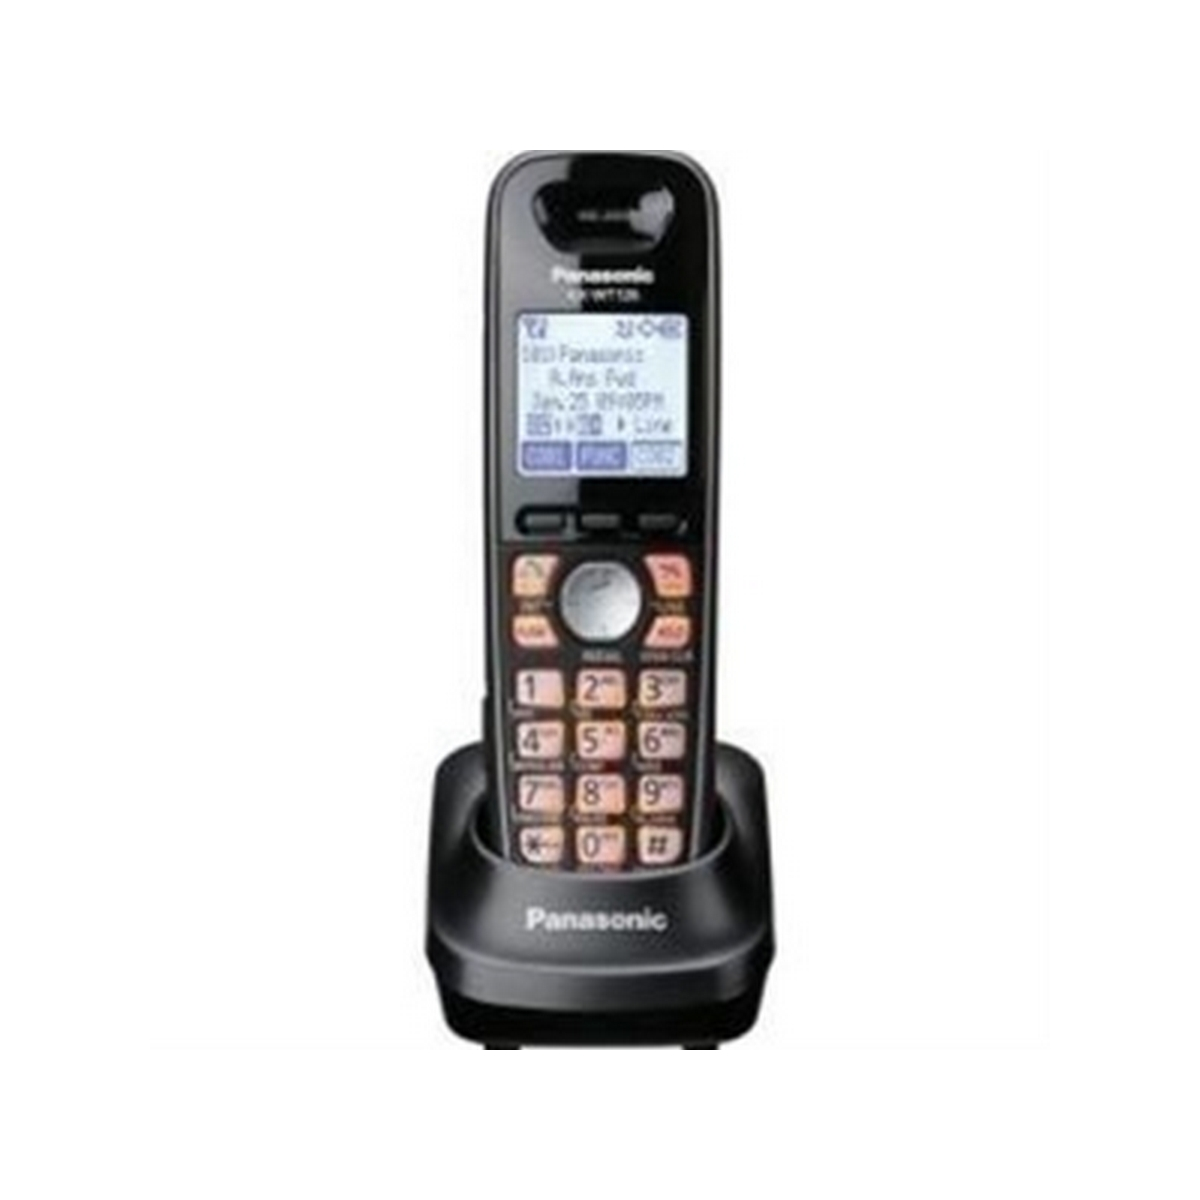 Panasonic Cordless Phone with Silent Option for TDA50 Systems